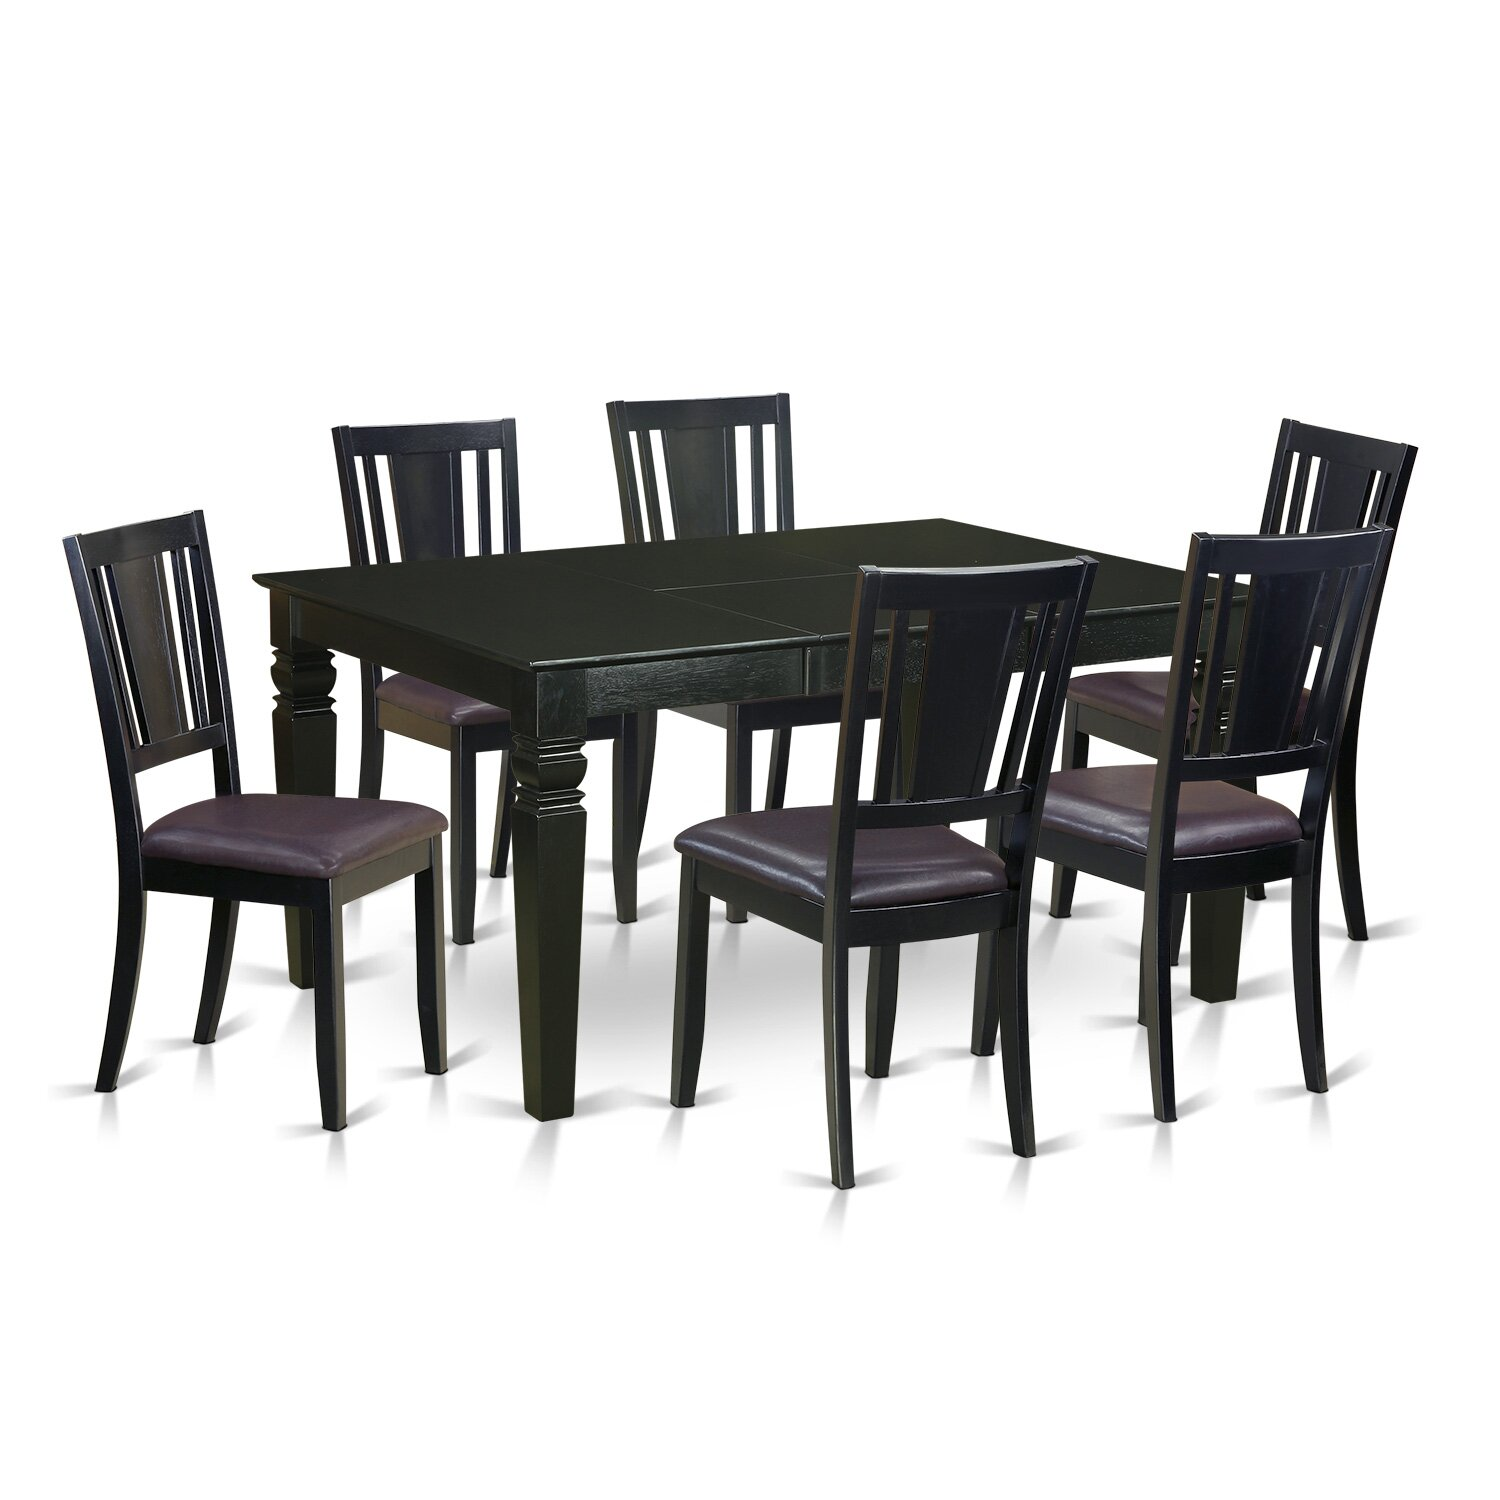 Wooden importers weston 7 piece dining set wayfair for 7 piece dining room sets on sale